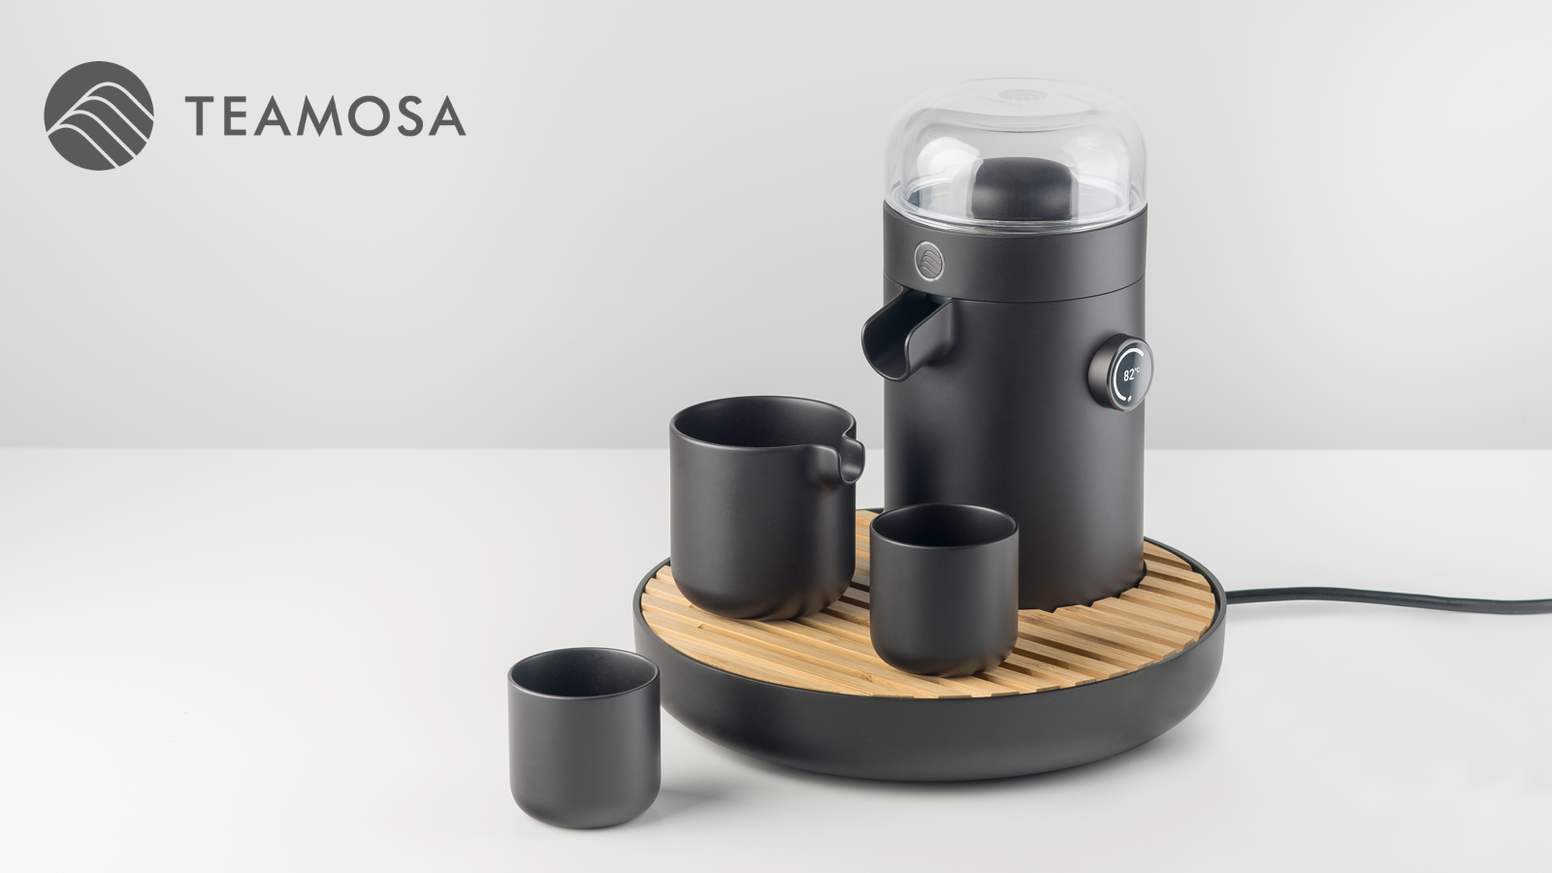 An automated tea brewing machine that uses ultrasonic extraction to retain up to 20% more antioxidants than traditionally brewed tea